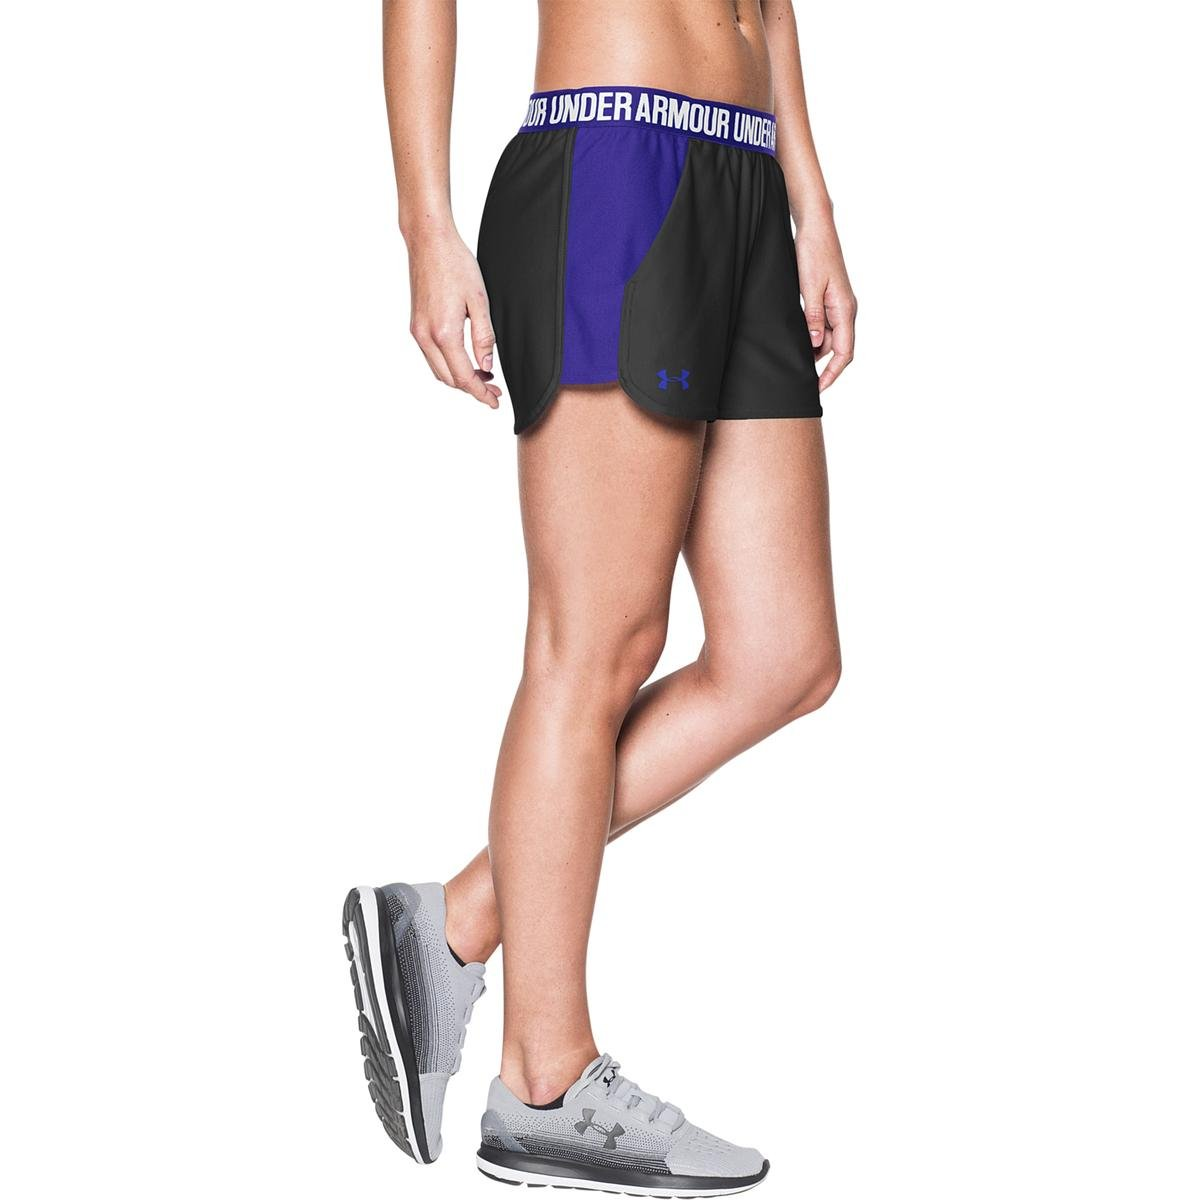 (アンダーアーマー) UNDER ARMOUR プレイアップショーツ(トレーニング/ショートパンツ/WOMEN)[1292231] B01KYUXKAM MD (US 8-10) 3|Black/Constellation Purple/Constellation Purple Black/Constellation Purple/Constellation Purple MD (US 8-10) 3